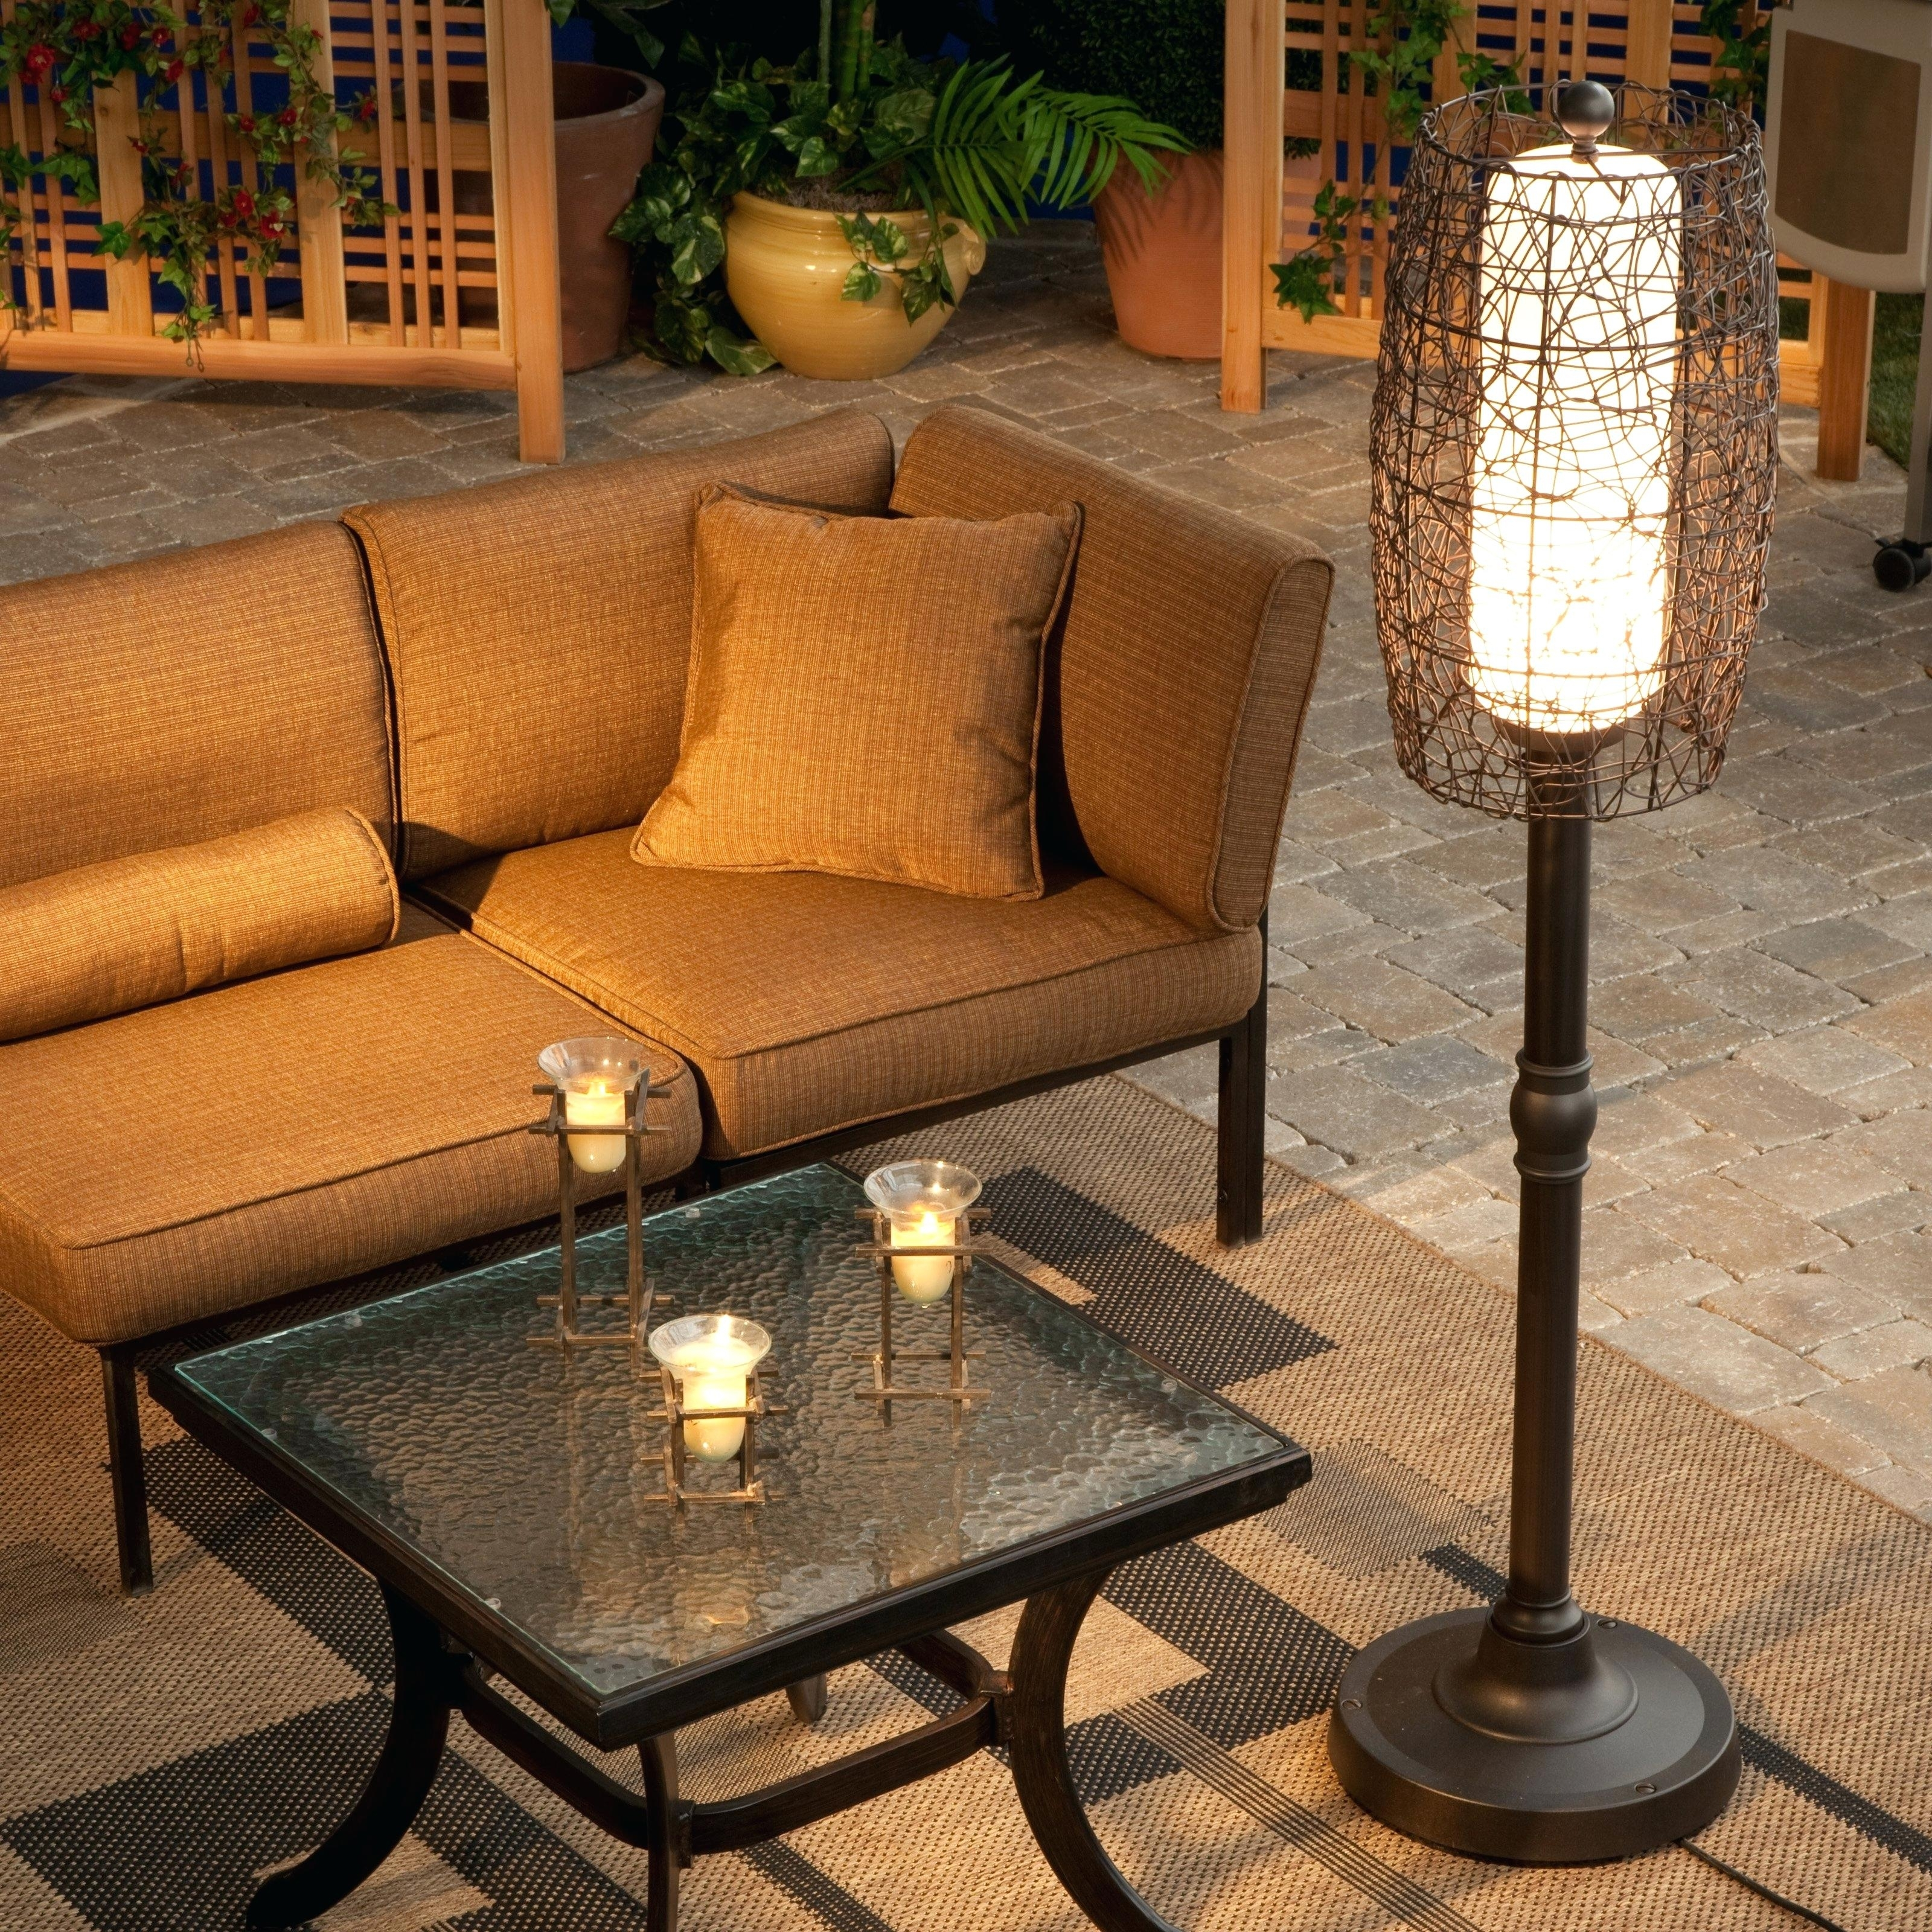 Outdoor Lights For Patio Lighting Ideas Pictures String Led Home for Outdoor Lanterns for Patio (Image 15 of 20)